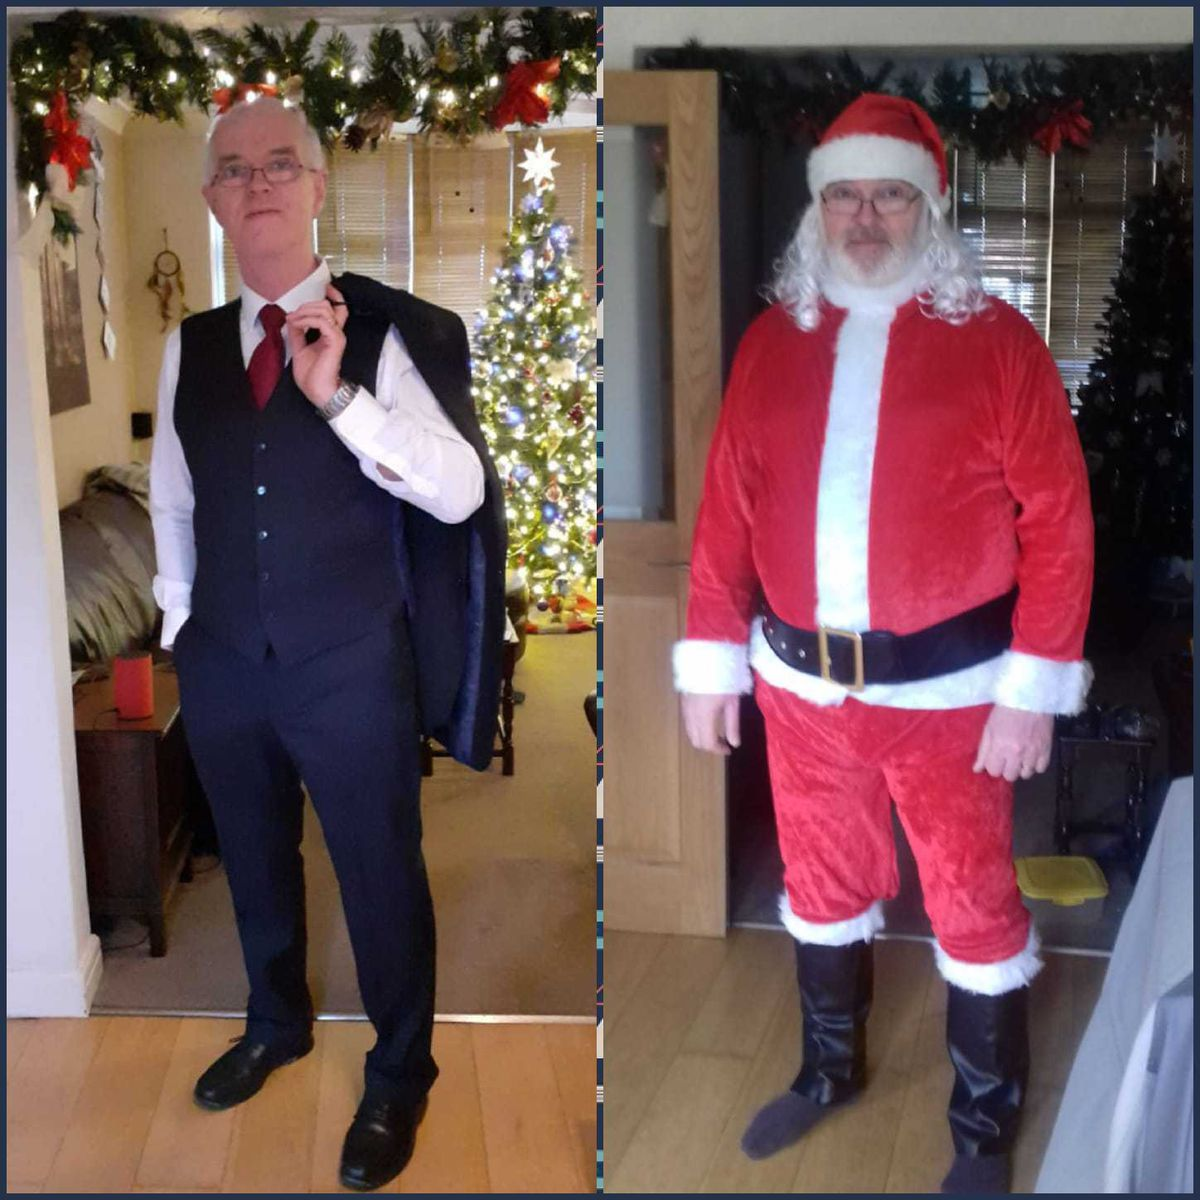 Now and then... Philip is now five and a half stone lighter and can fit back into the suit he wore for his daughter's wedding